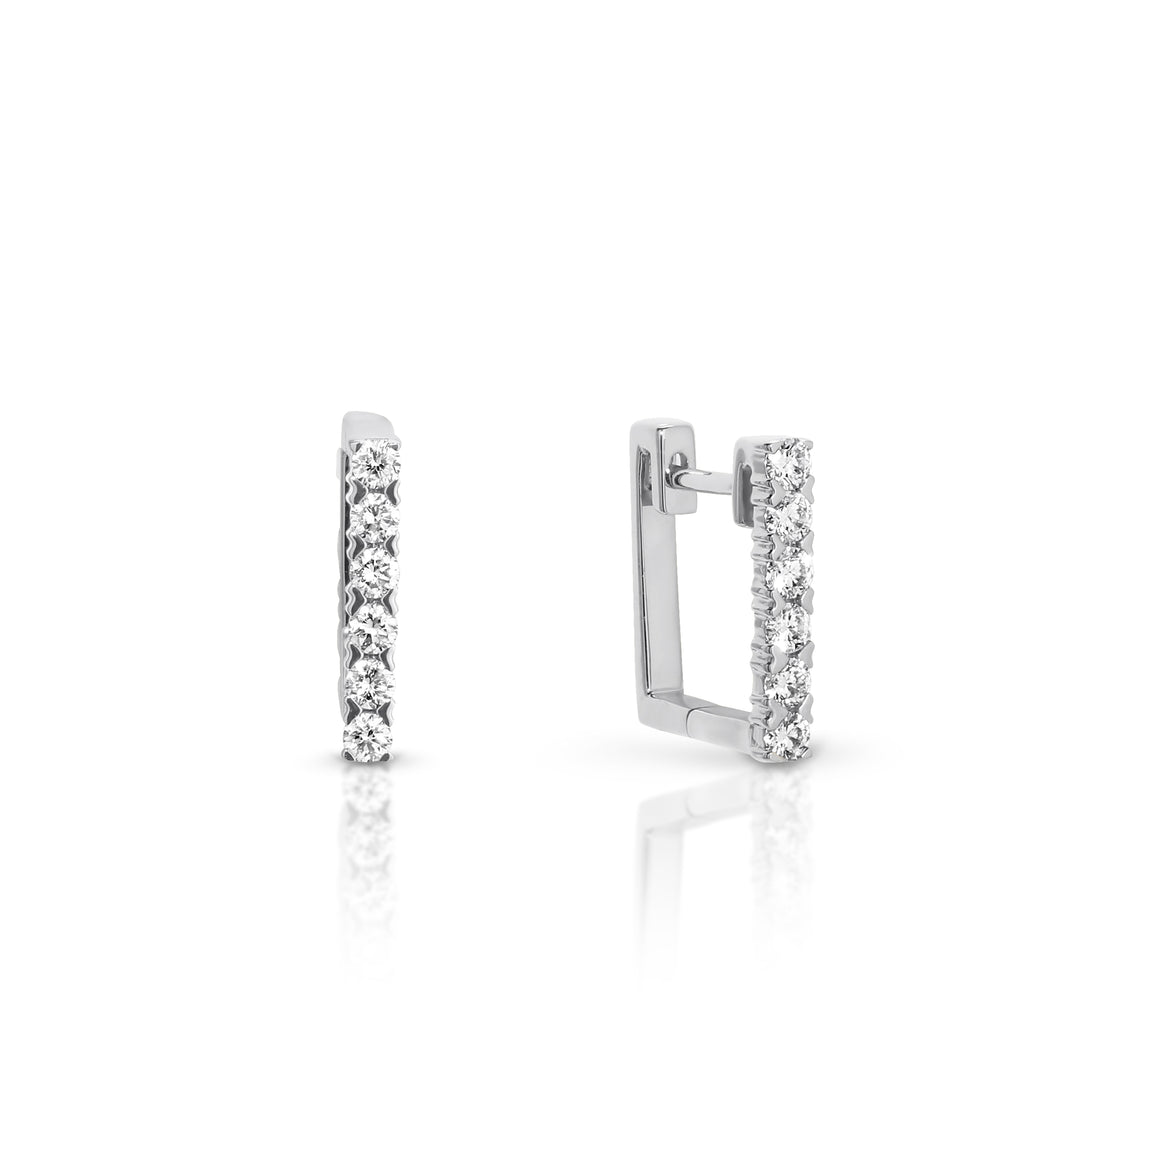 18ct Gold and Diamond 'Geo' Earrings - Gemma Stone  ABN:51 621 127 866